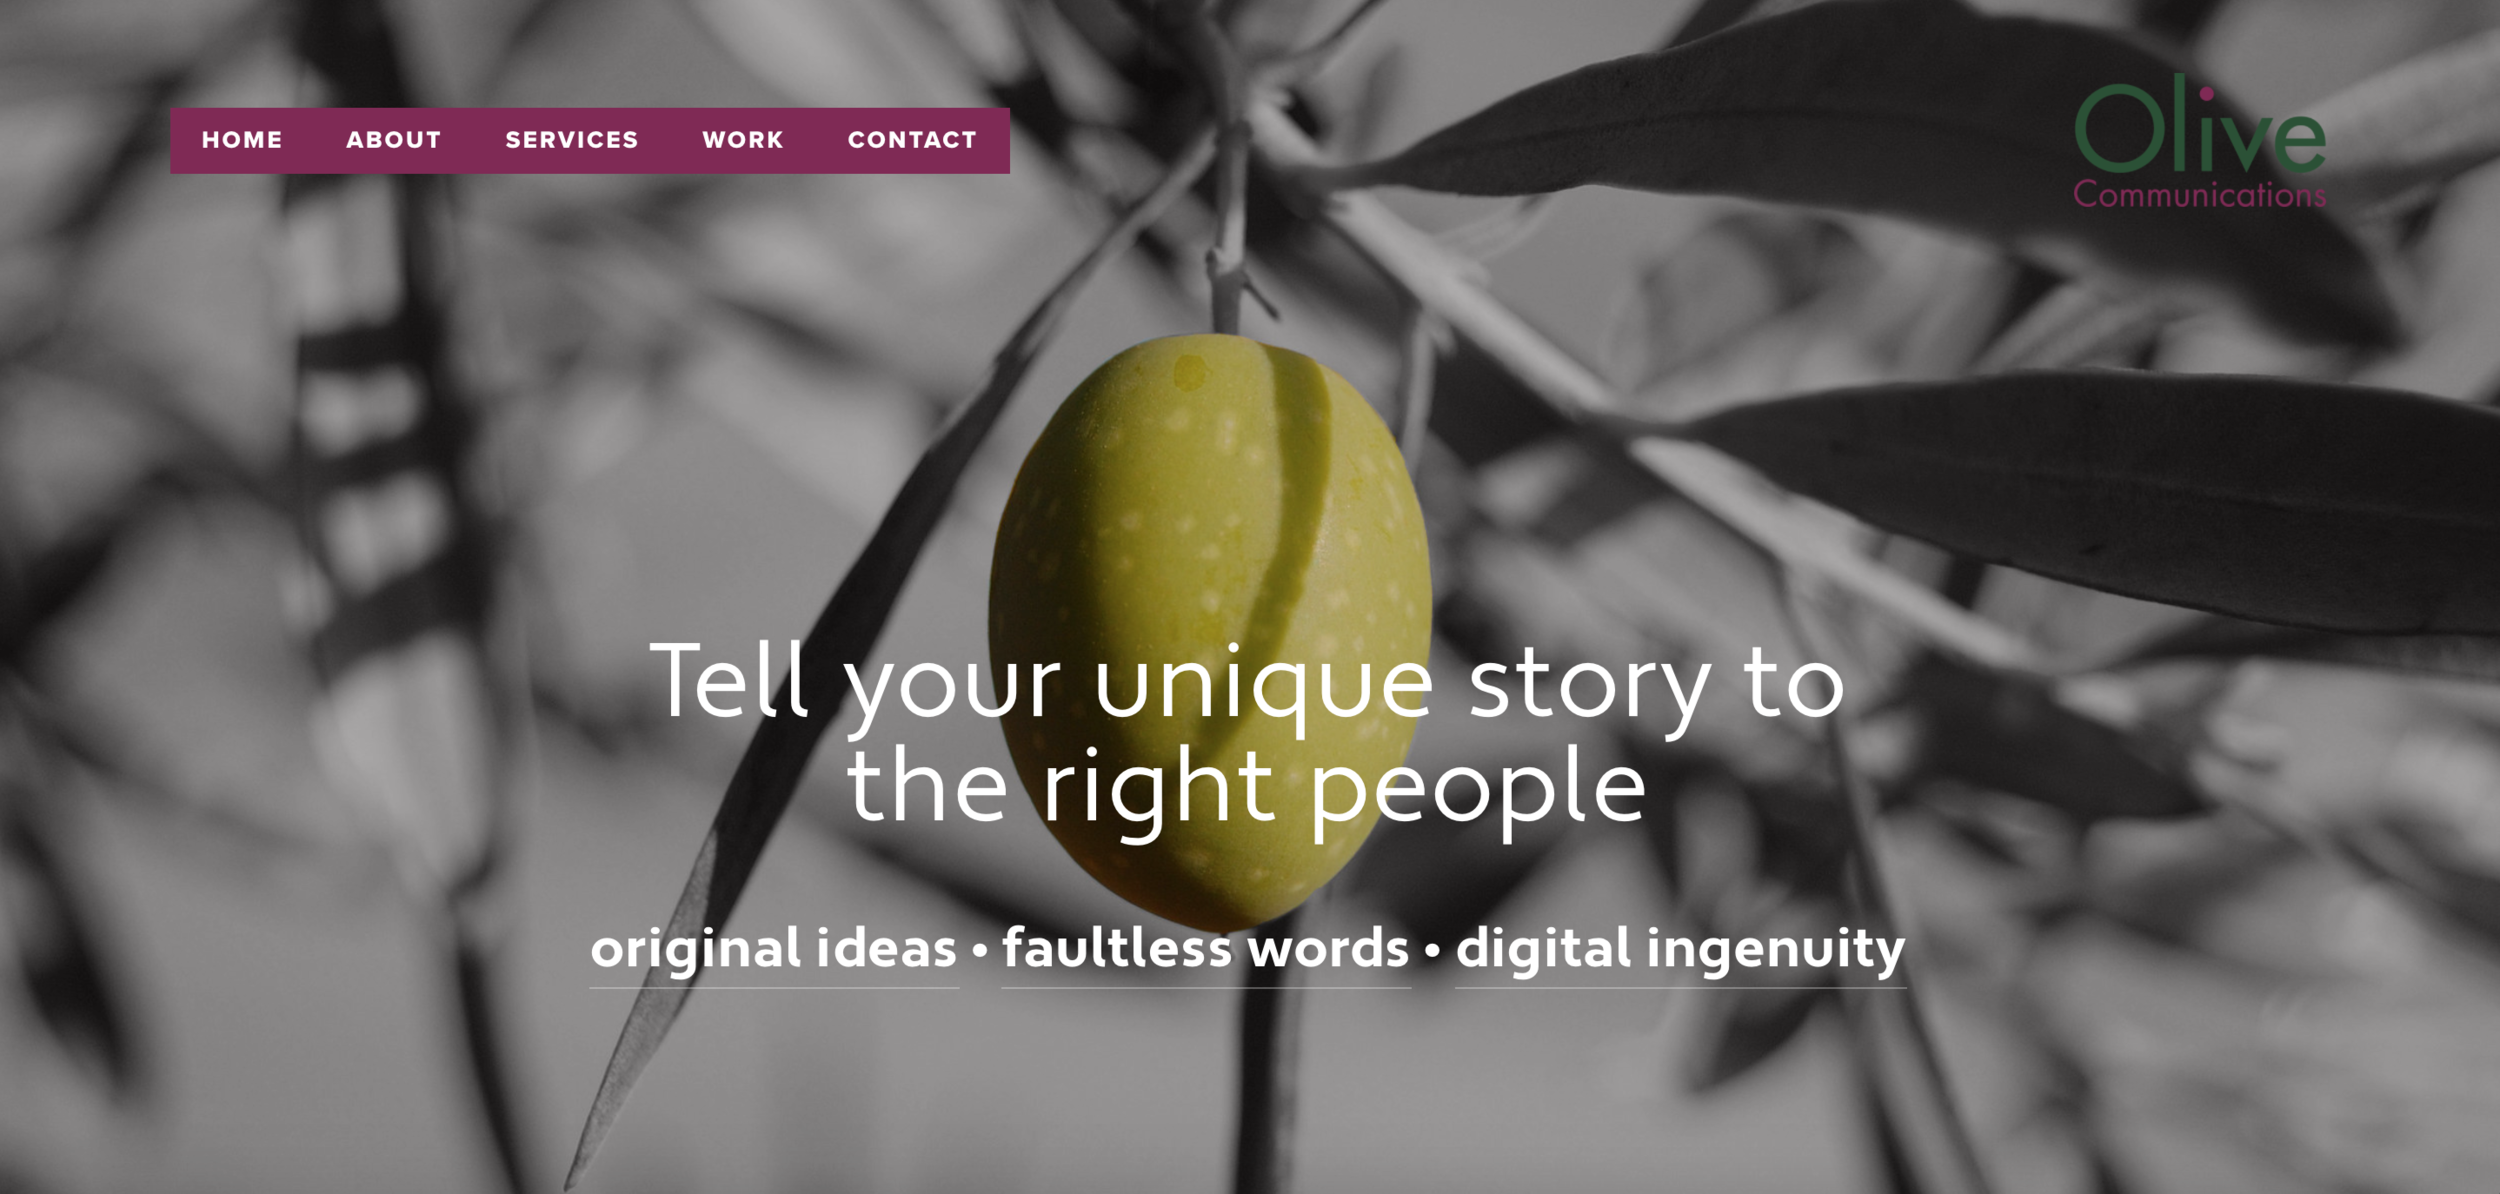 Olive Communicate - Brand new business, brand new website. Showcasing a portfolio of work and list of services.